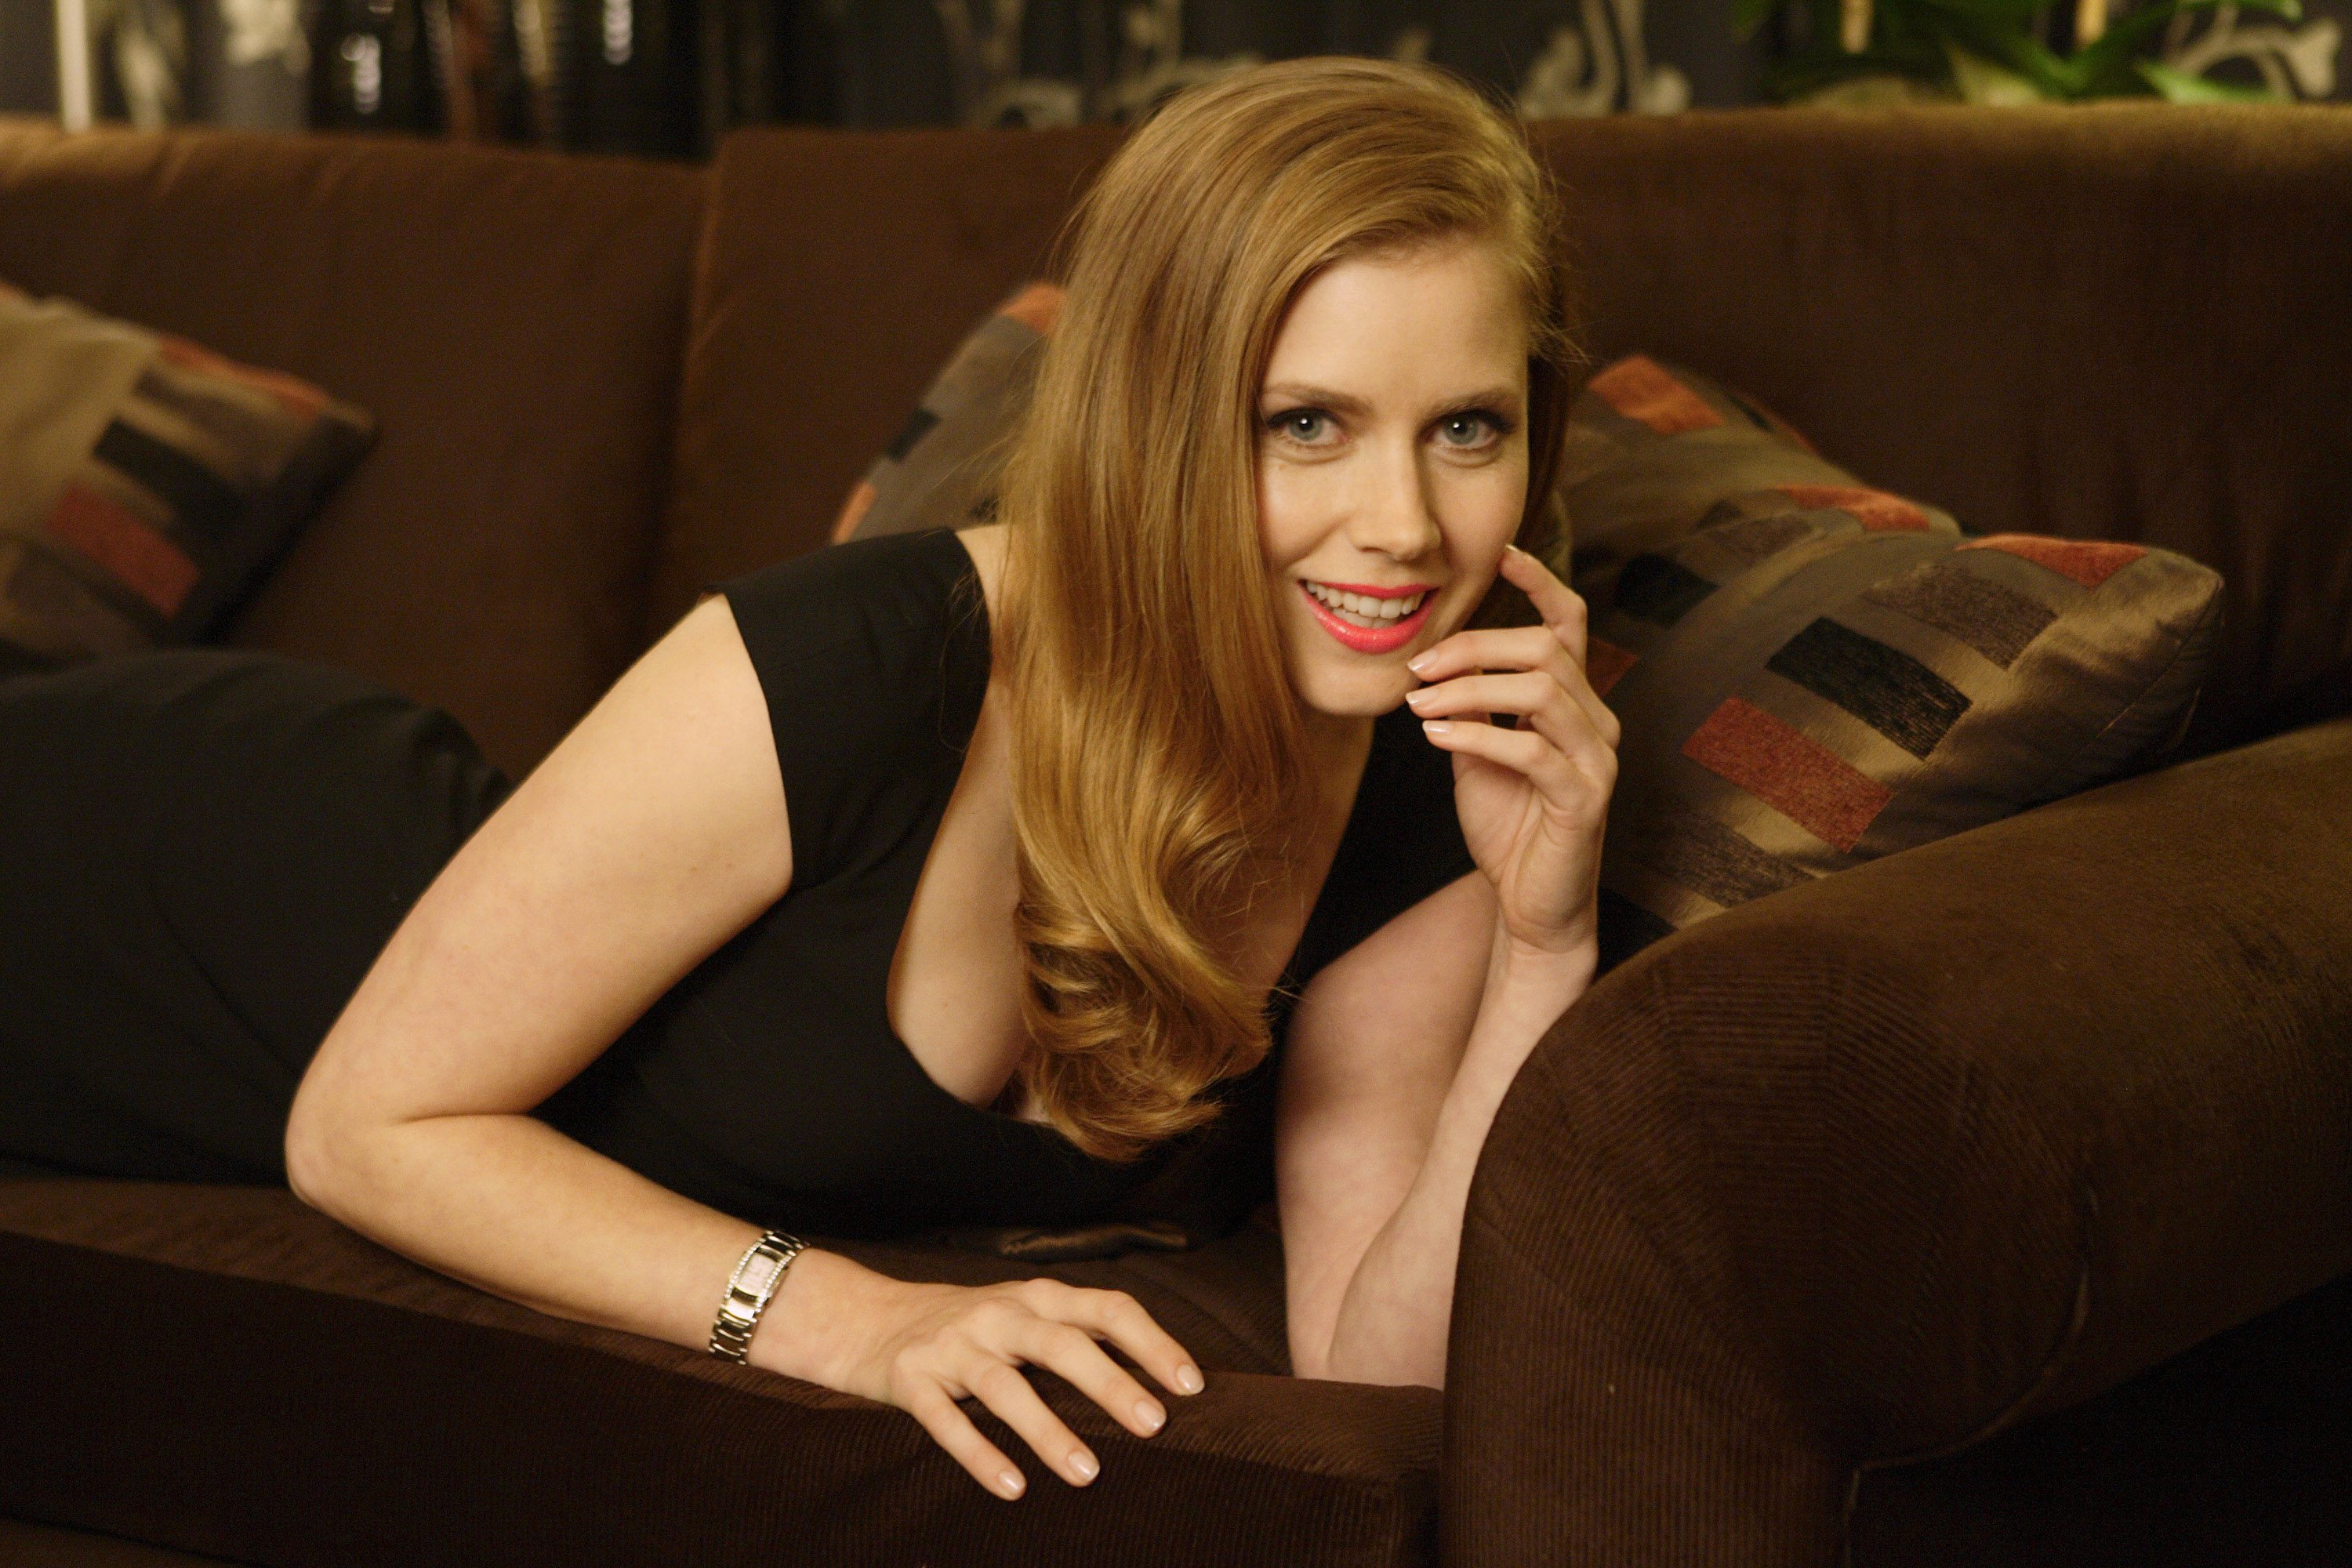 beautiful amy adams excellent still in sofa pose background free desktop hd mobile images